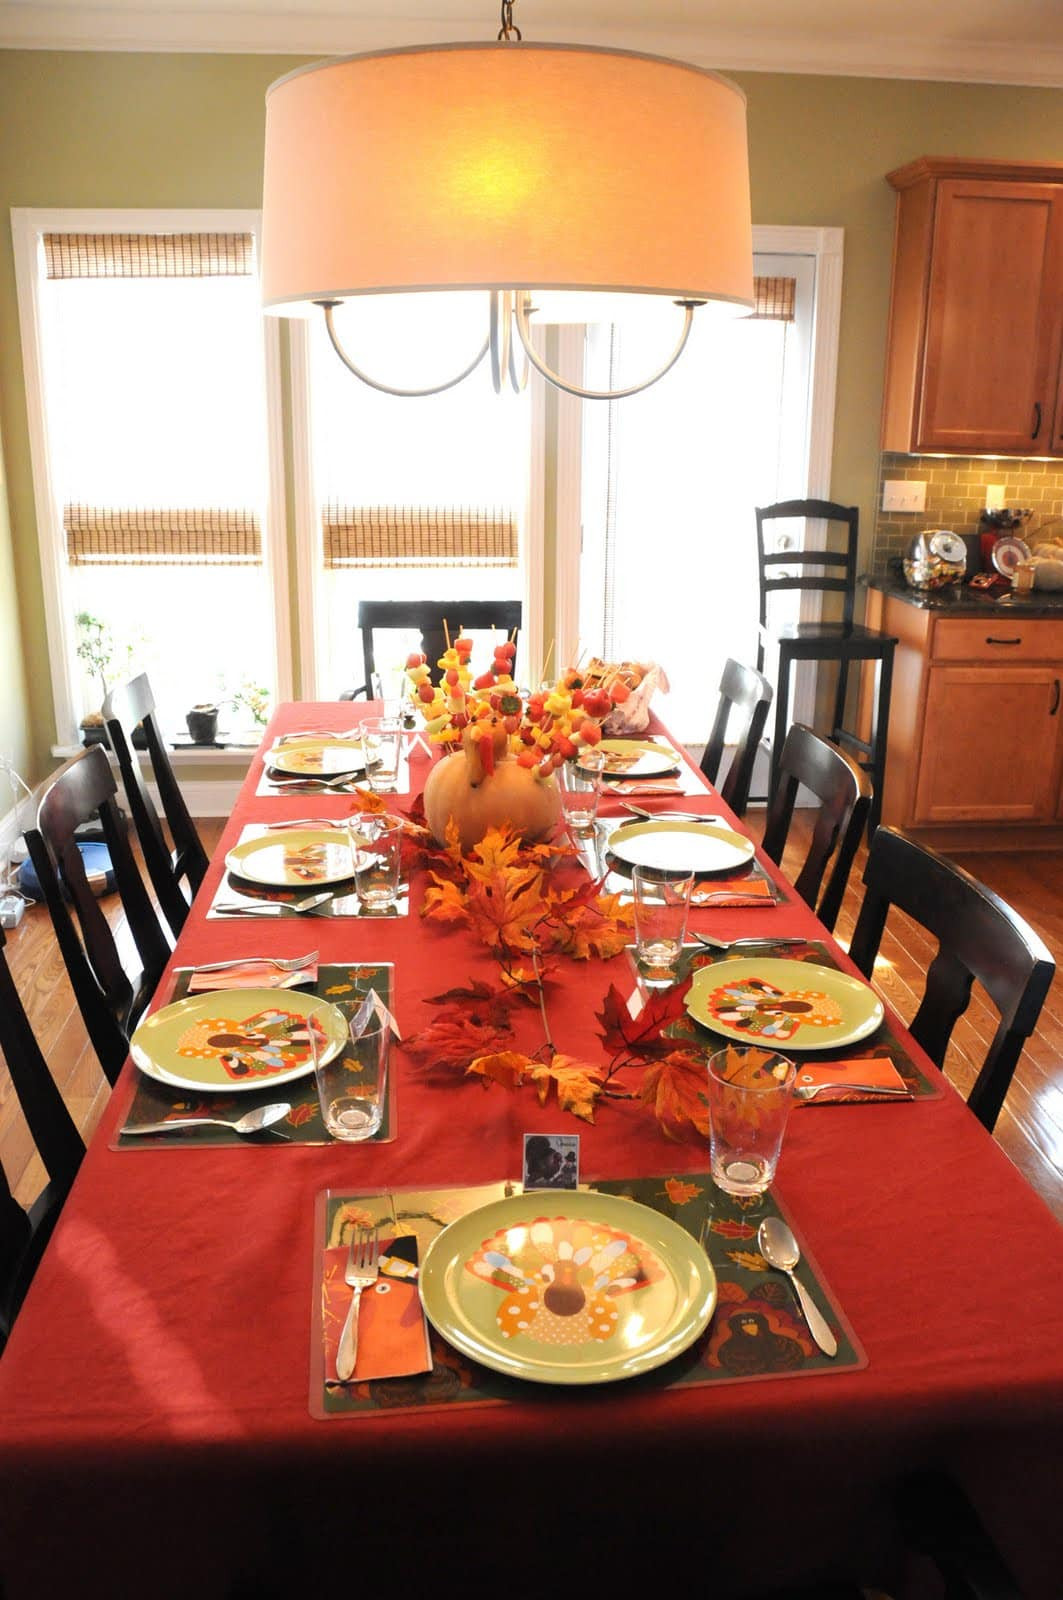 Thanksgiving Table Decorations  Thanksgiving Decor The Polkadot Chair